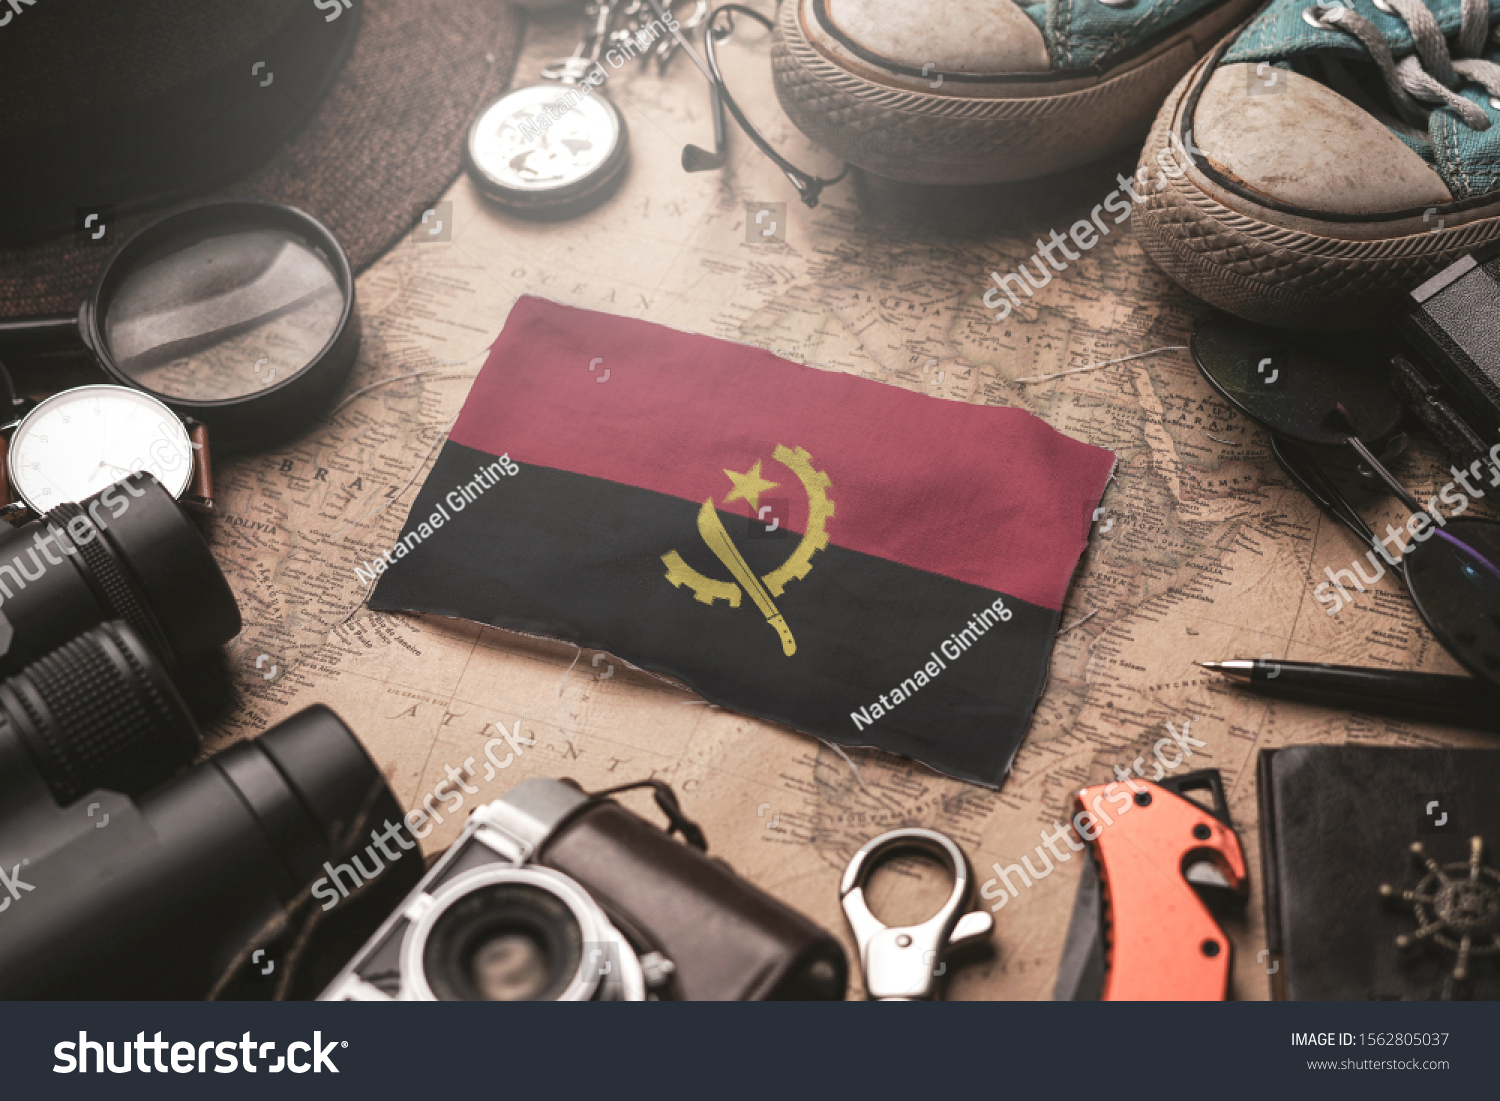 Angola Flag Between Traveler's Accessories on Old Vintage Map. Tourist Destination Concept. Tourist Destination Concept. #1562805037